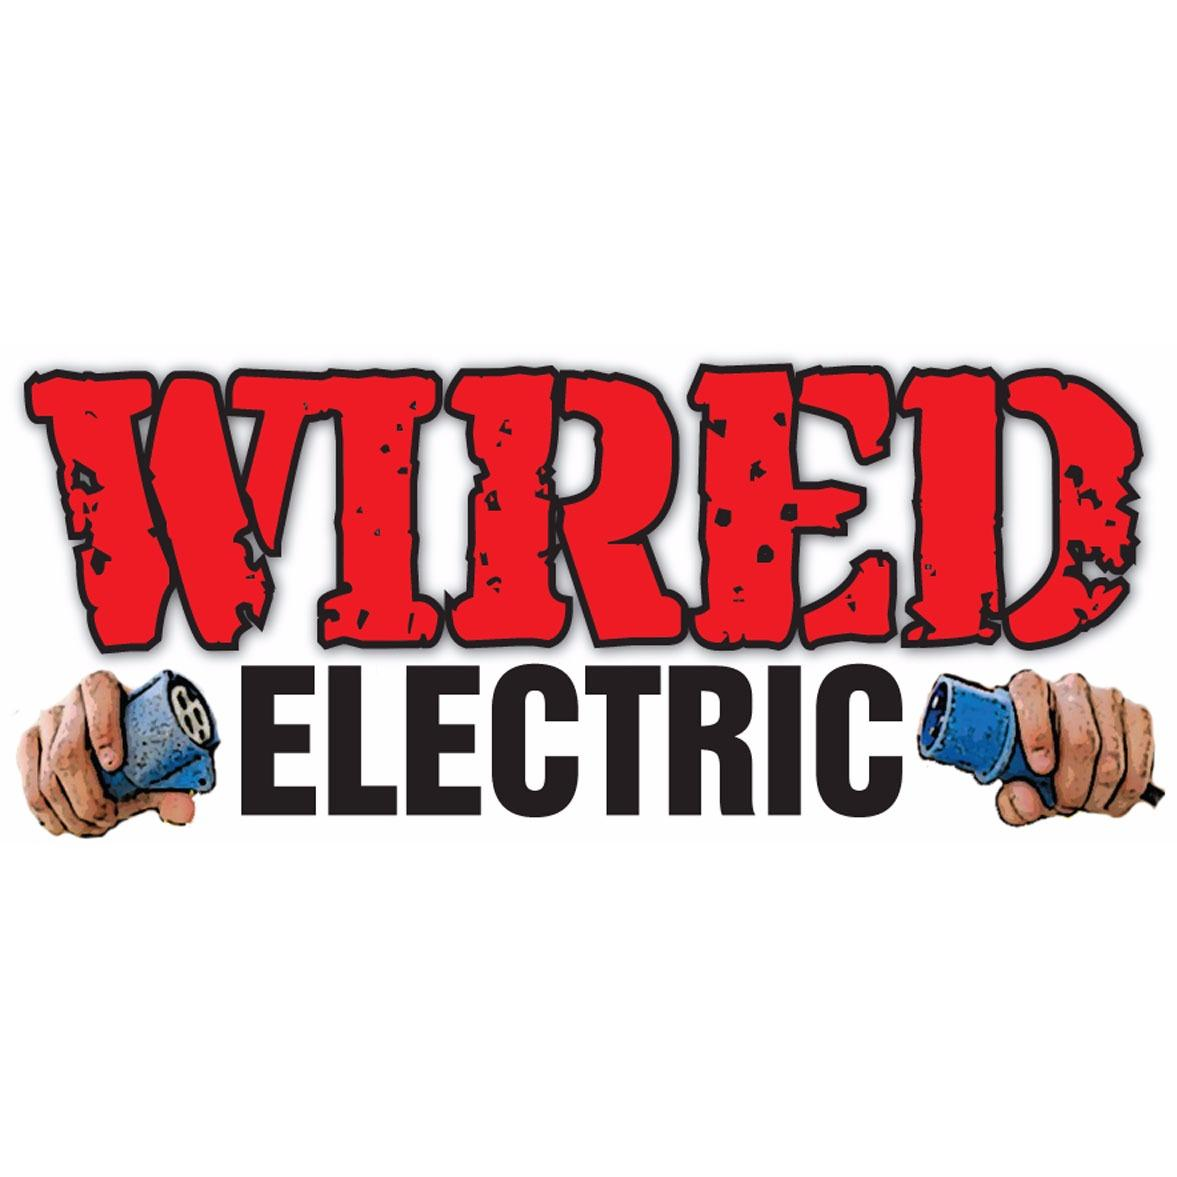 Wired Electric LLC